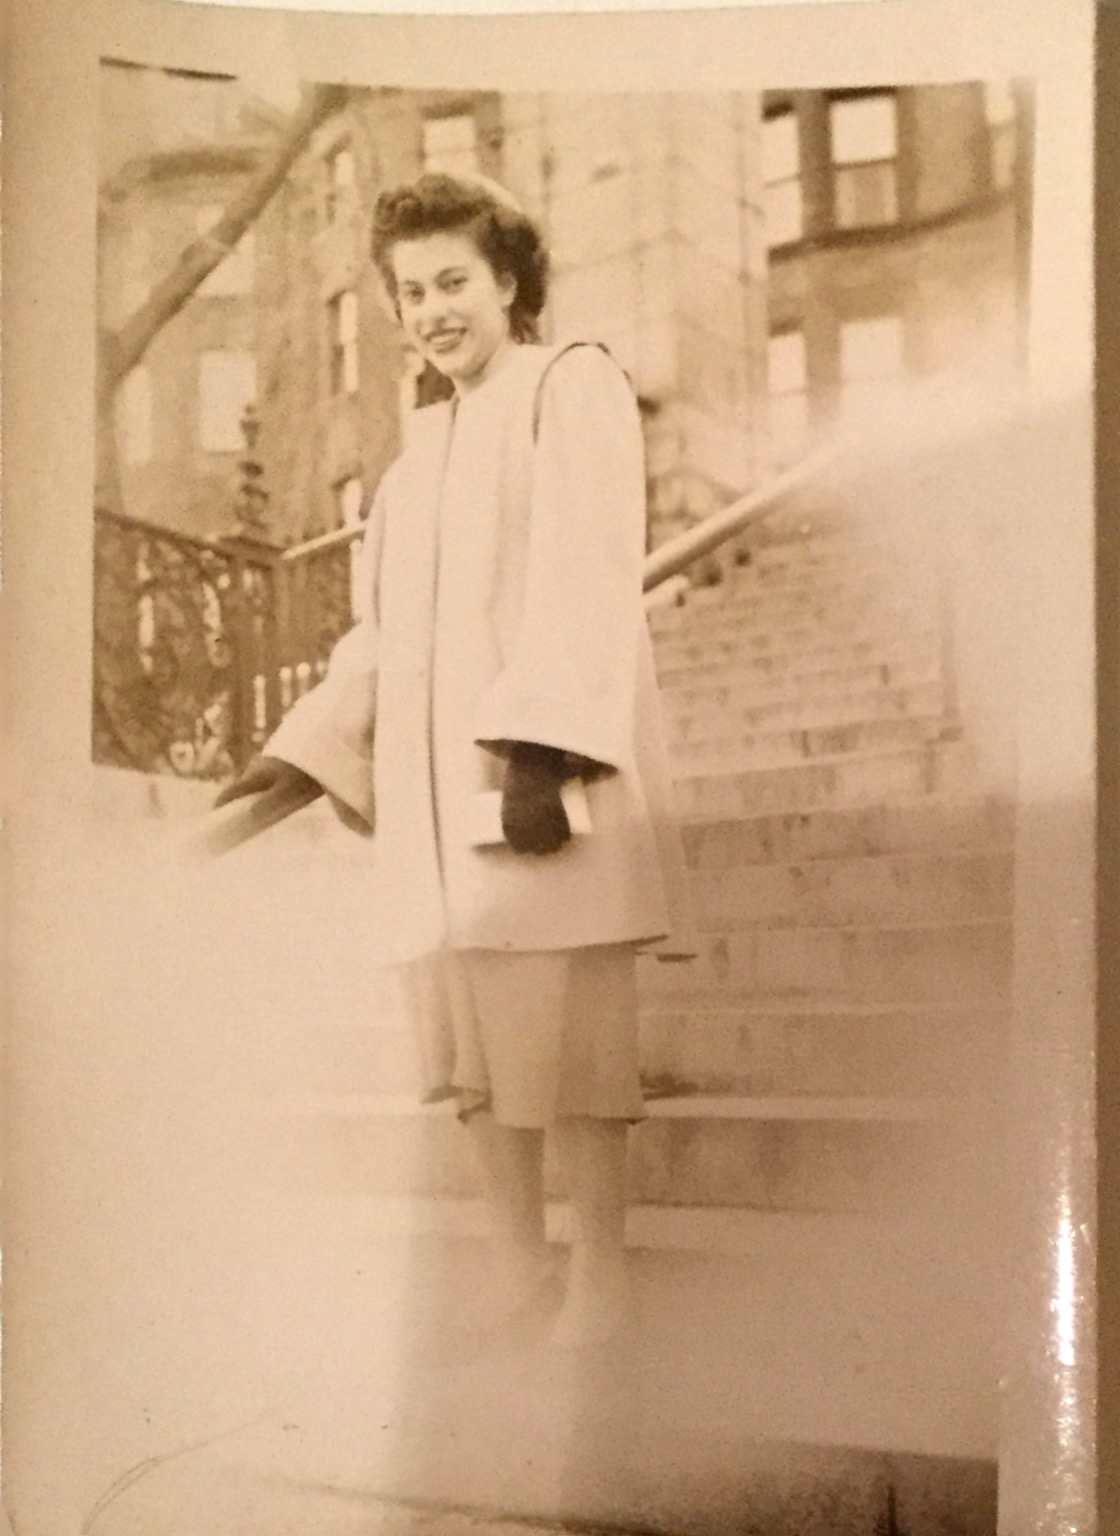 Smiling young woman dressed in a warm, formal coat and shoes standing on the steps.